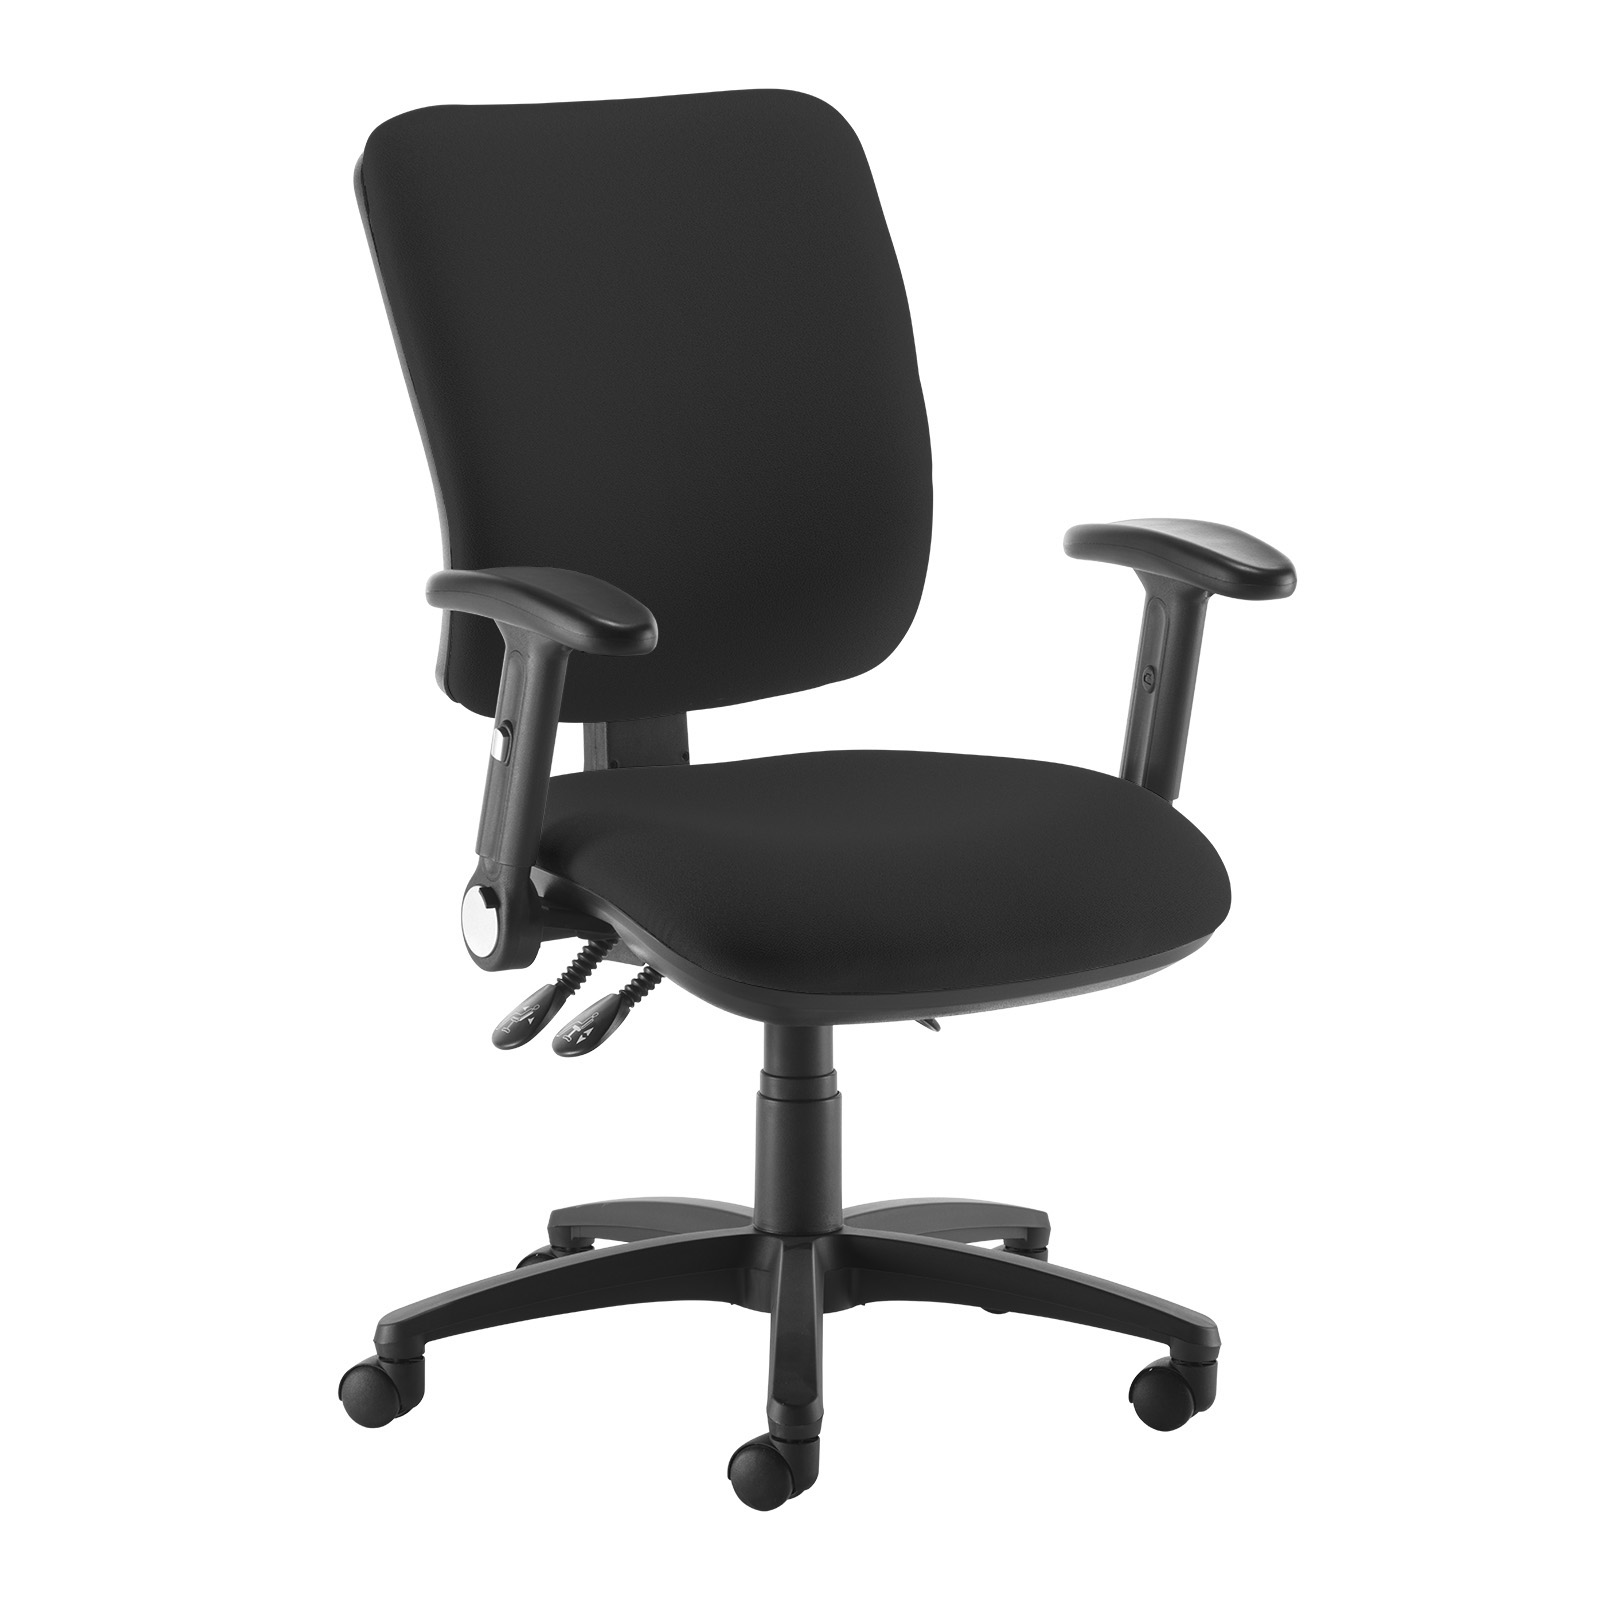 Senza high back operator chair with folding arms - black